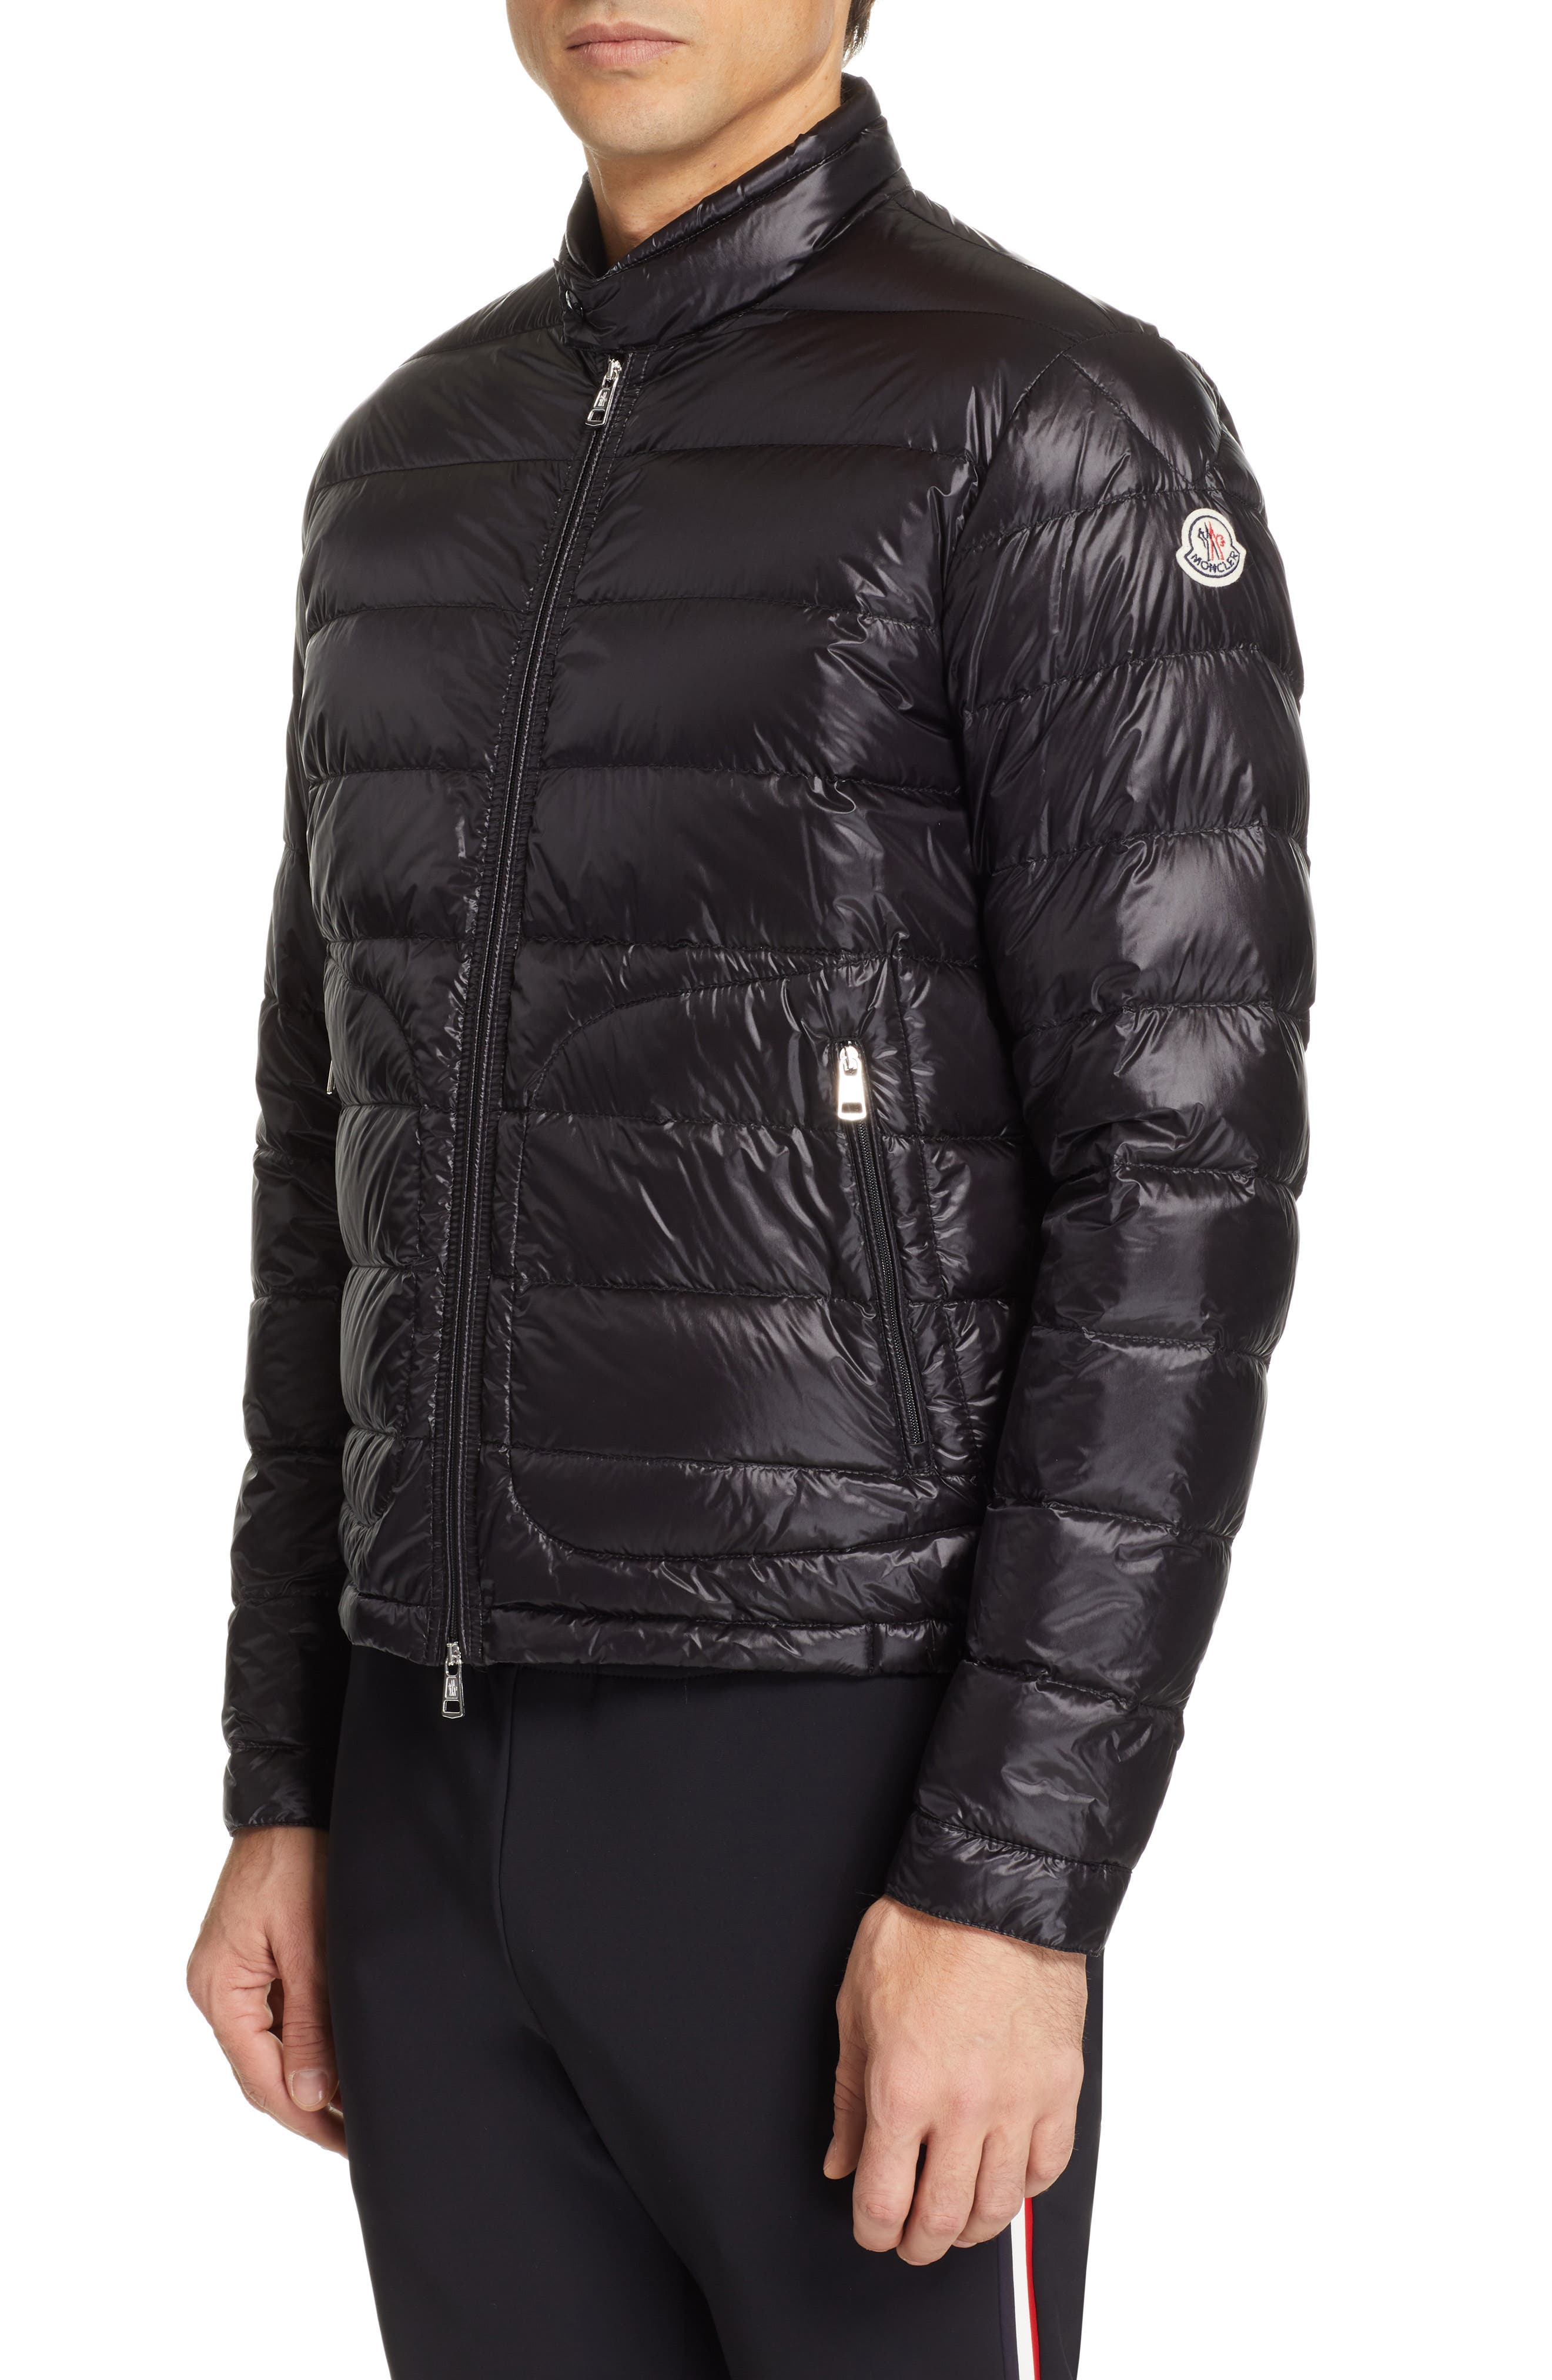 MONCLER, Acorus Down Jacket, Main thumbnail 1, color, BLACK